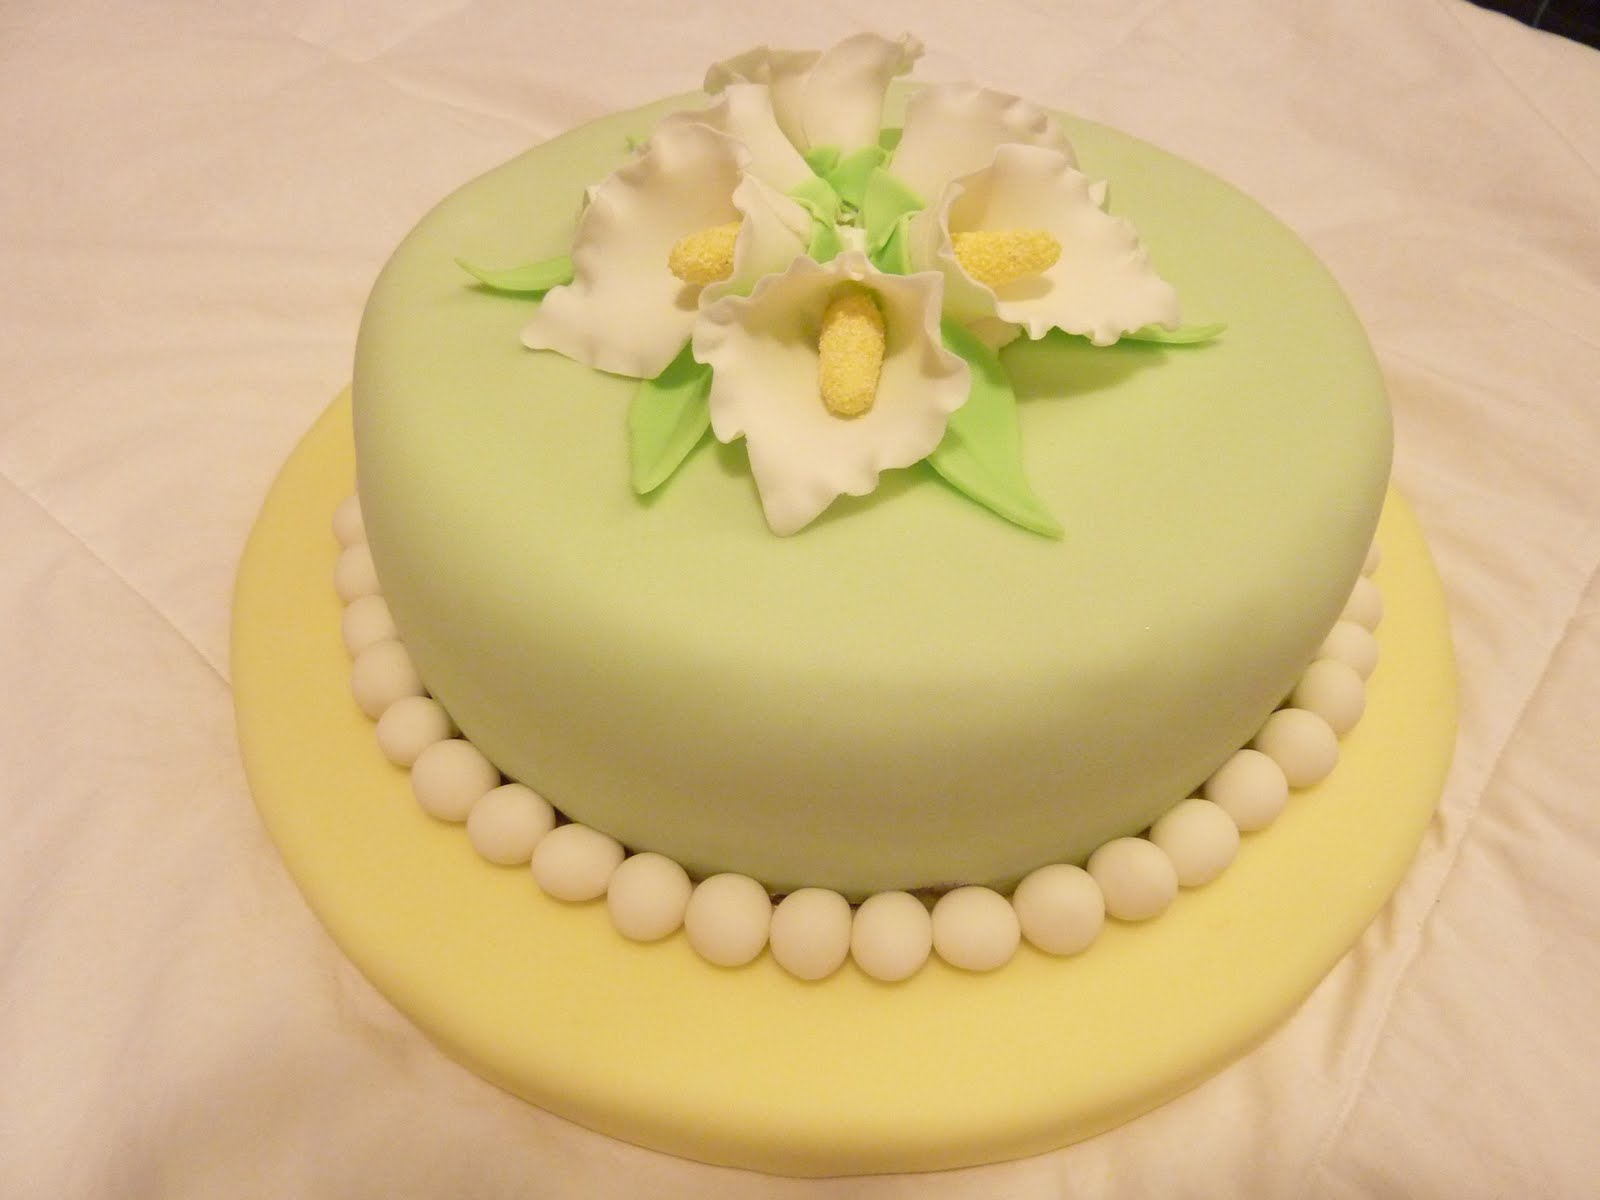 Fondant Cake Decorating Classes Michaels : Our Sweet Obsession: Gum Paste and Fondant Class Completed!!!